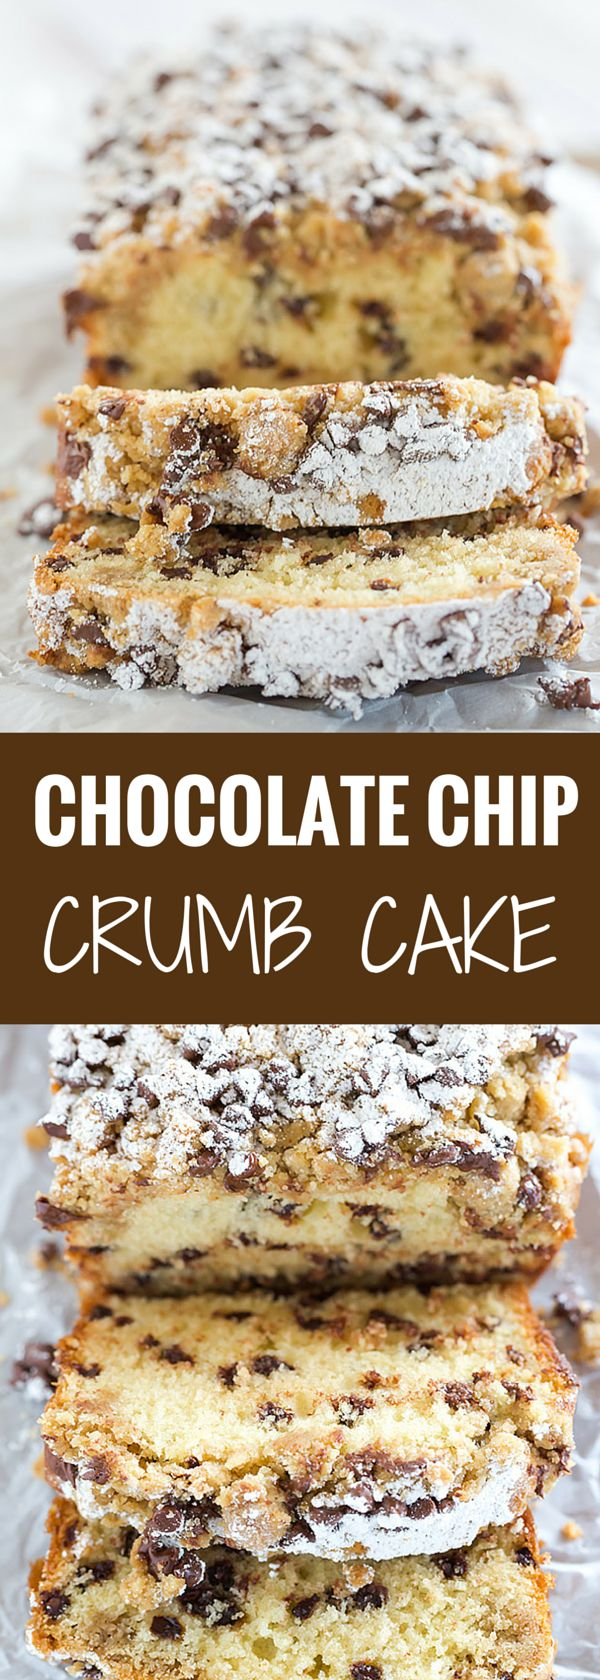 This chocolate chip crumb cake is unbelievably tender, loaded with chocolate chips and topped with the most amazing crumb topping!: